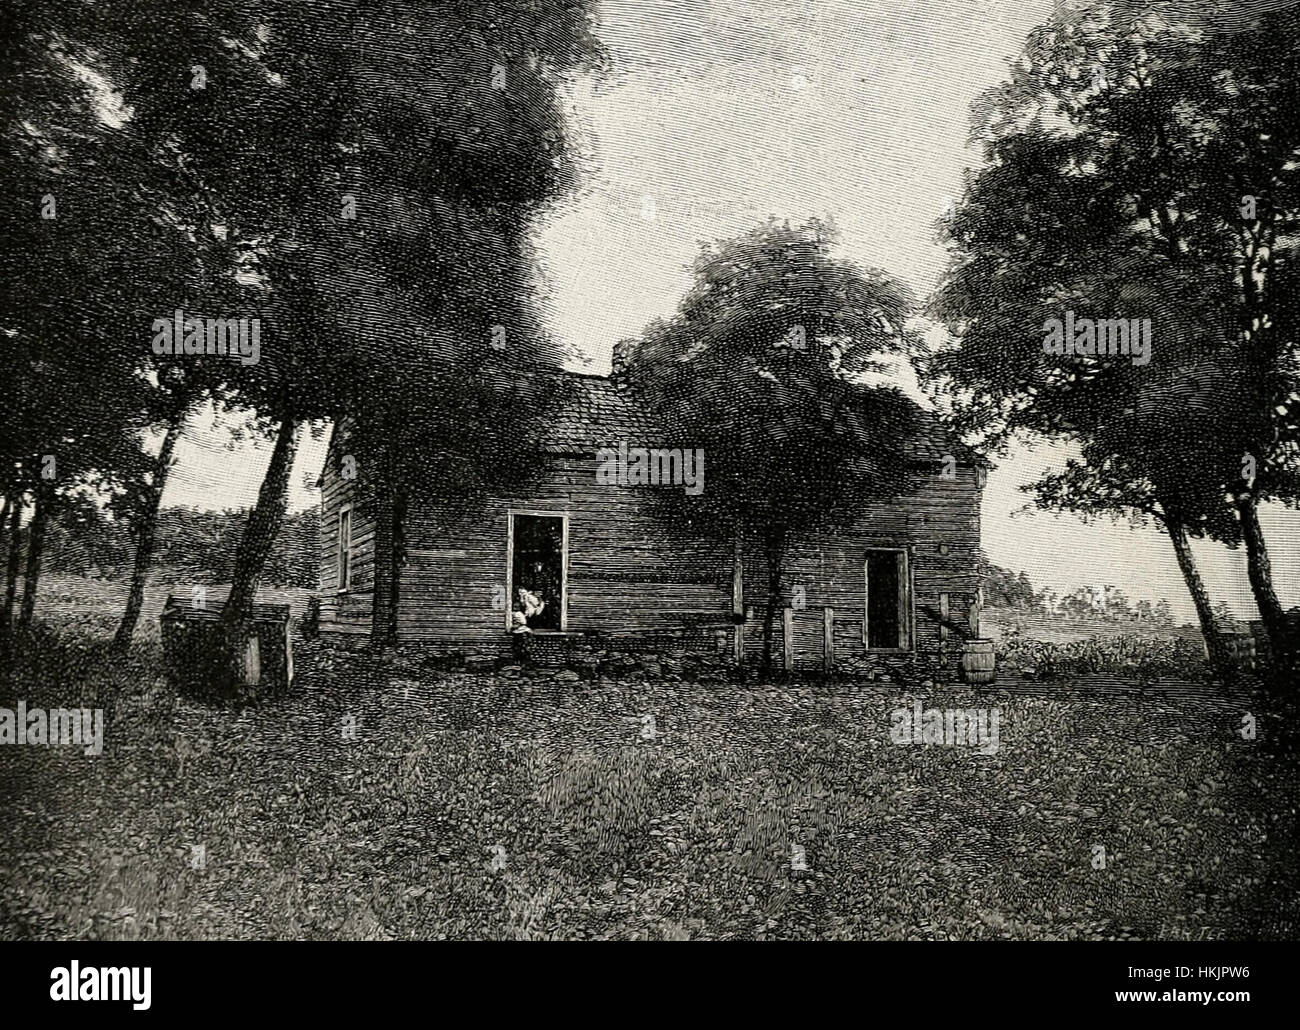 House near Beechland, Kentucky, in which Thomas Lincoln and Nancy Hanks were married June 12, 1806 - Stock Image